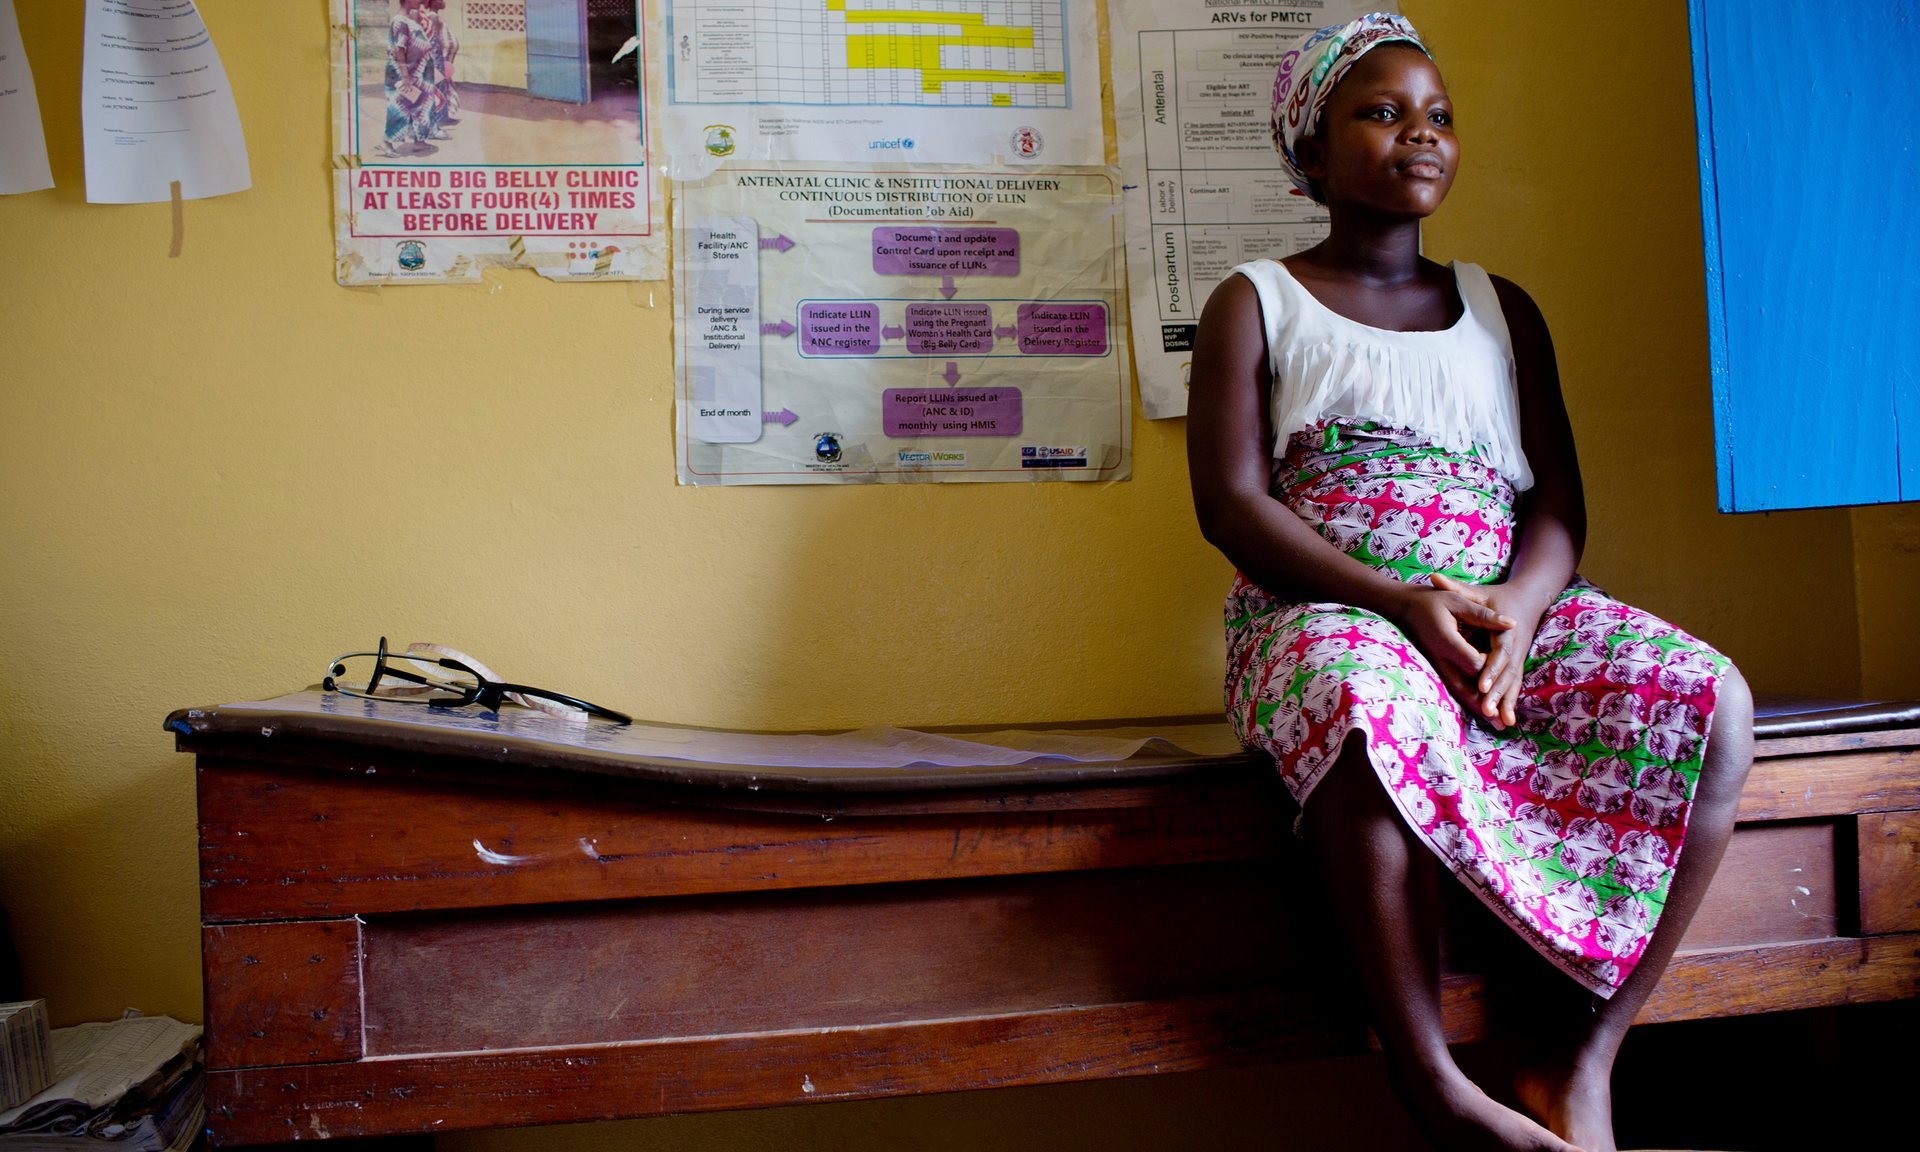 Maria, 17, who is pregnant with her second child, waits to be examined at the Well Baby clinic in Buchanan, Liberia. All photographs by Kate Holt